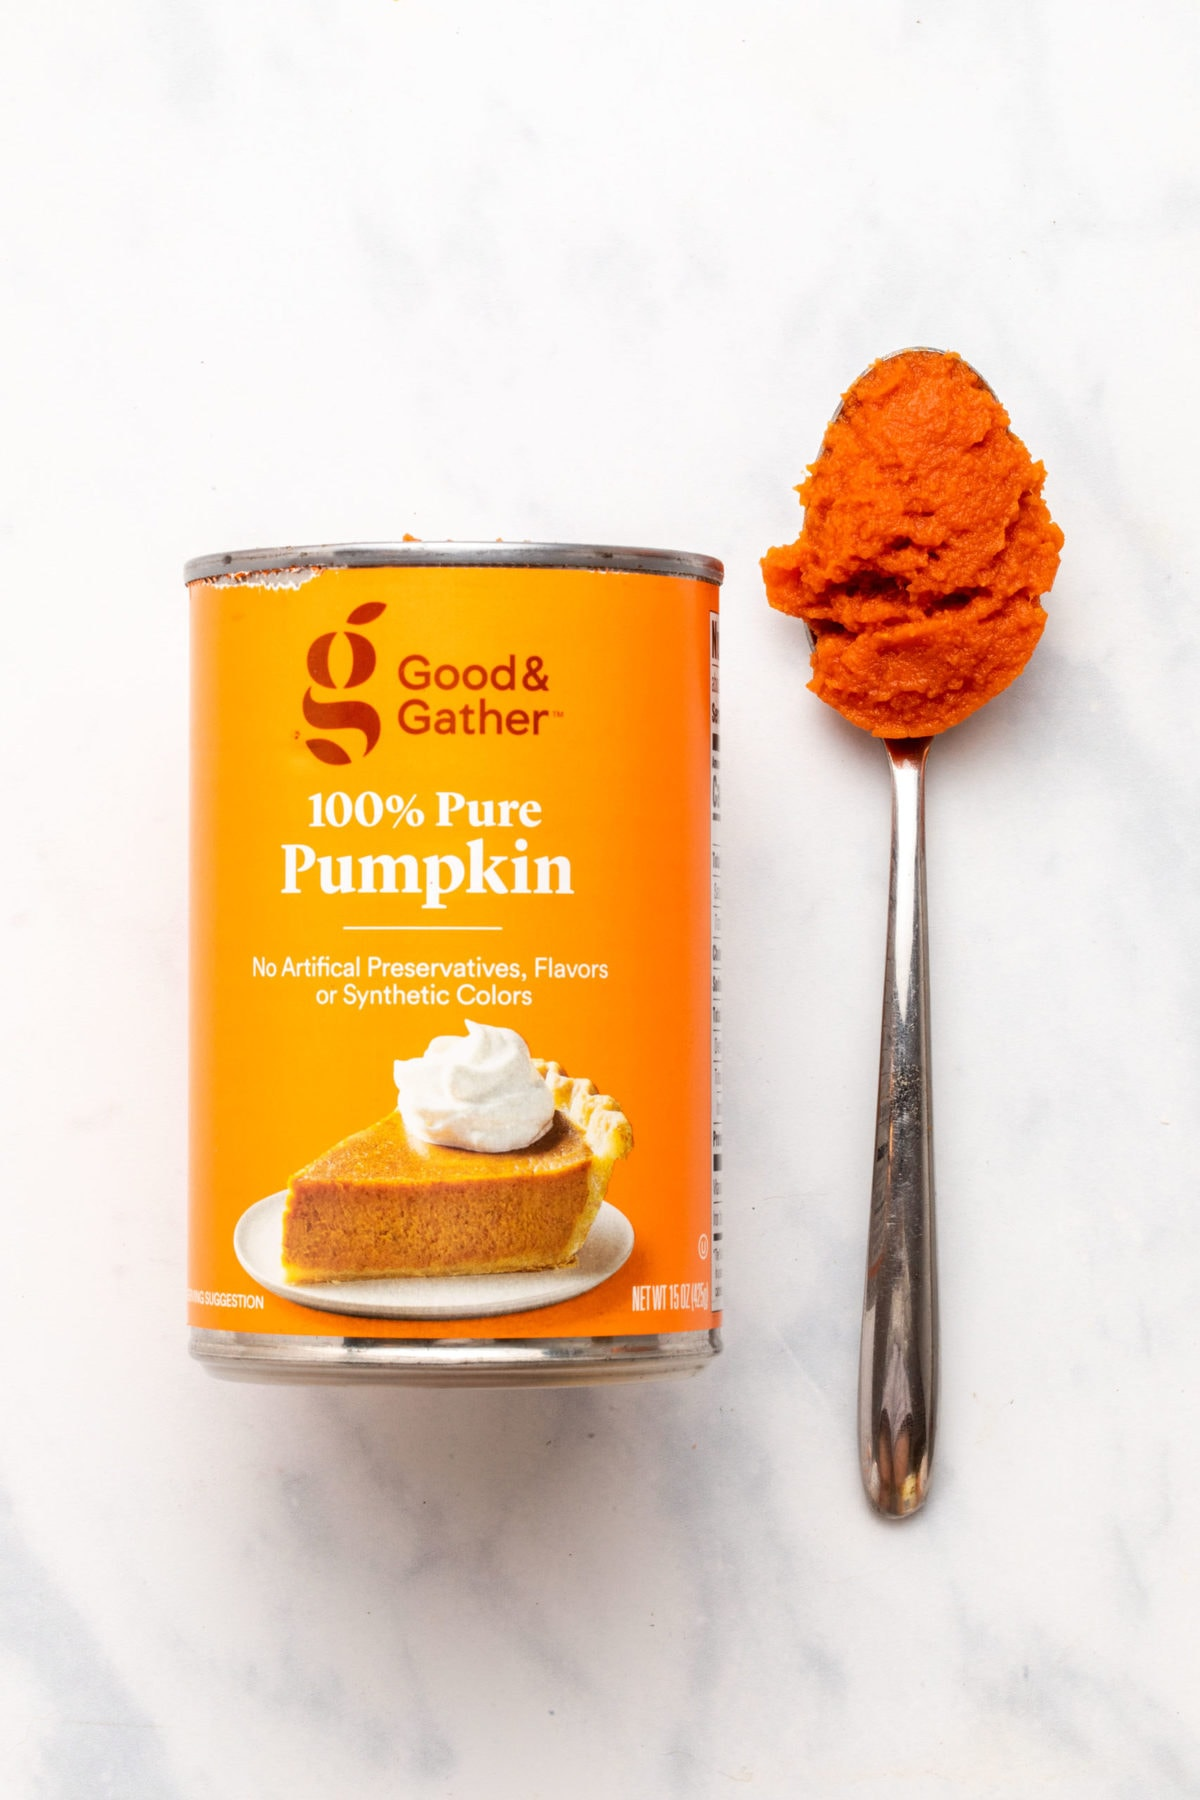 Can of Target's Good & Gather pumpkin puree next to spoon with puree on it